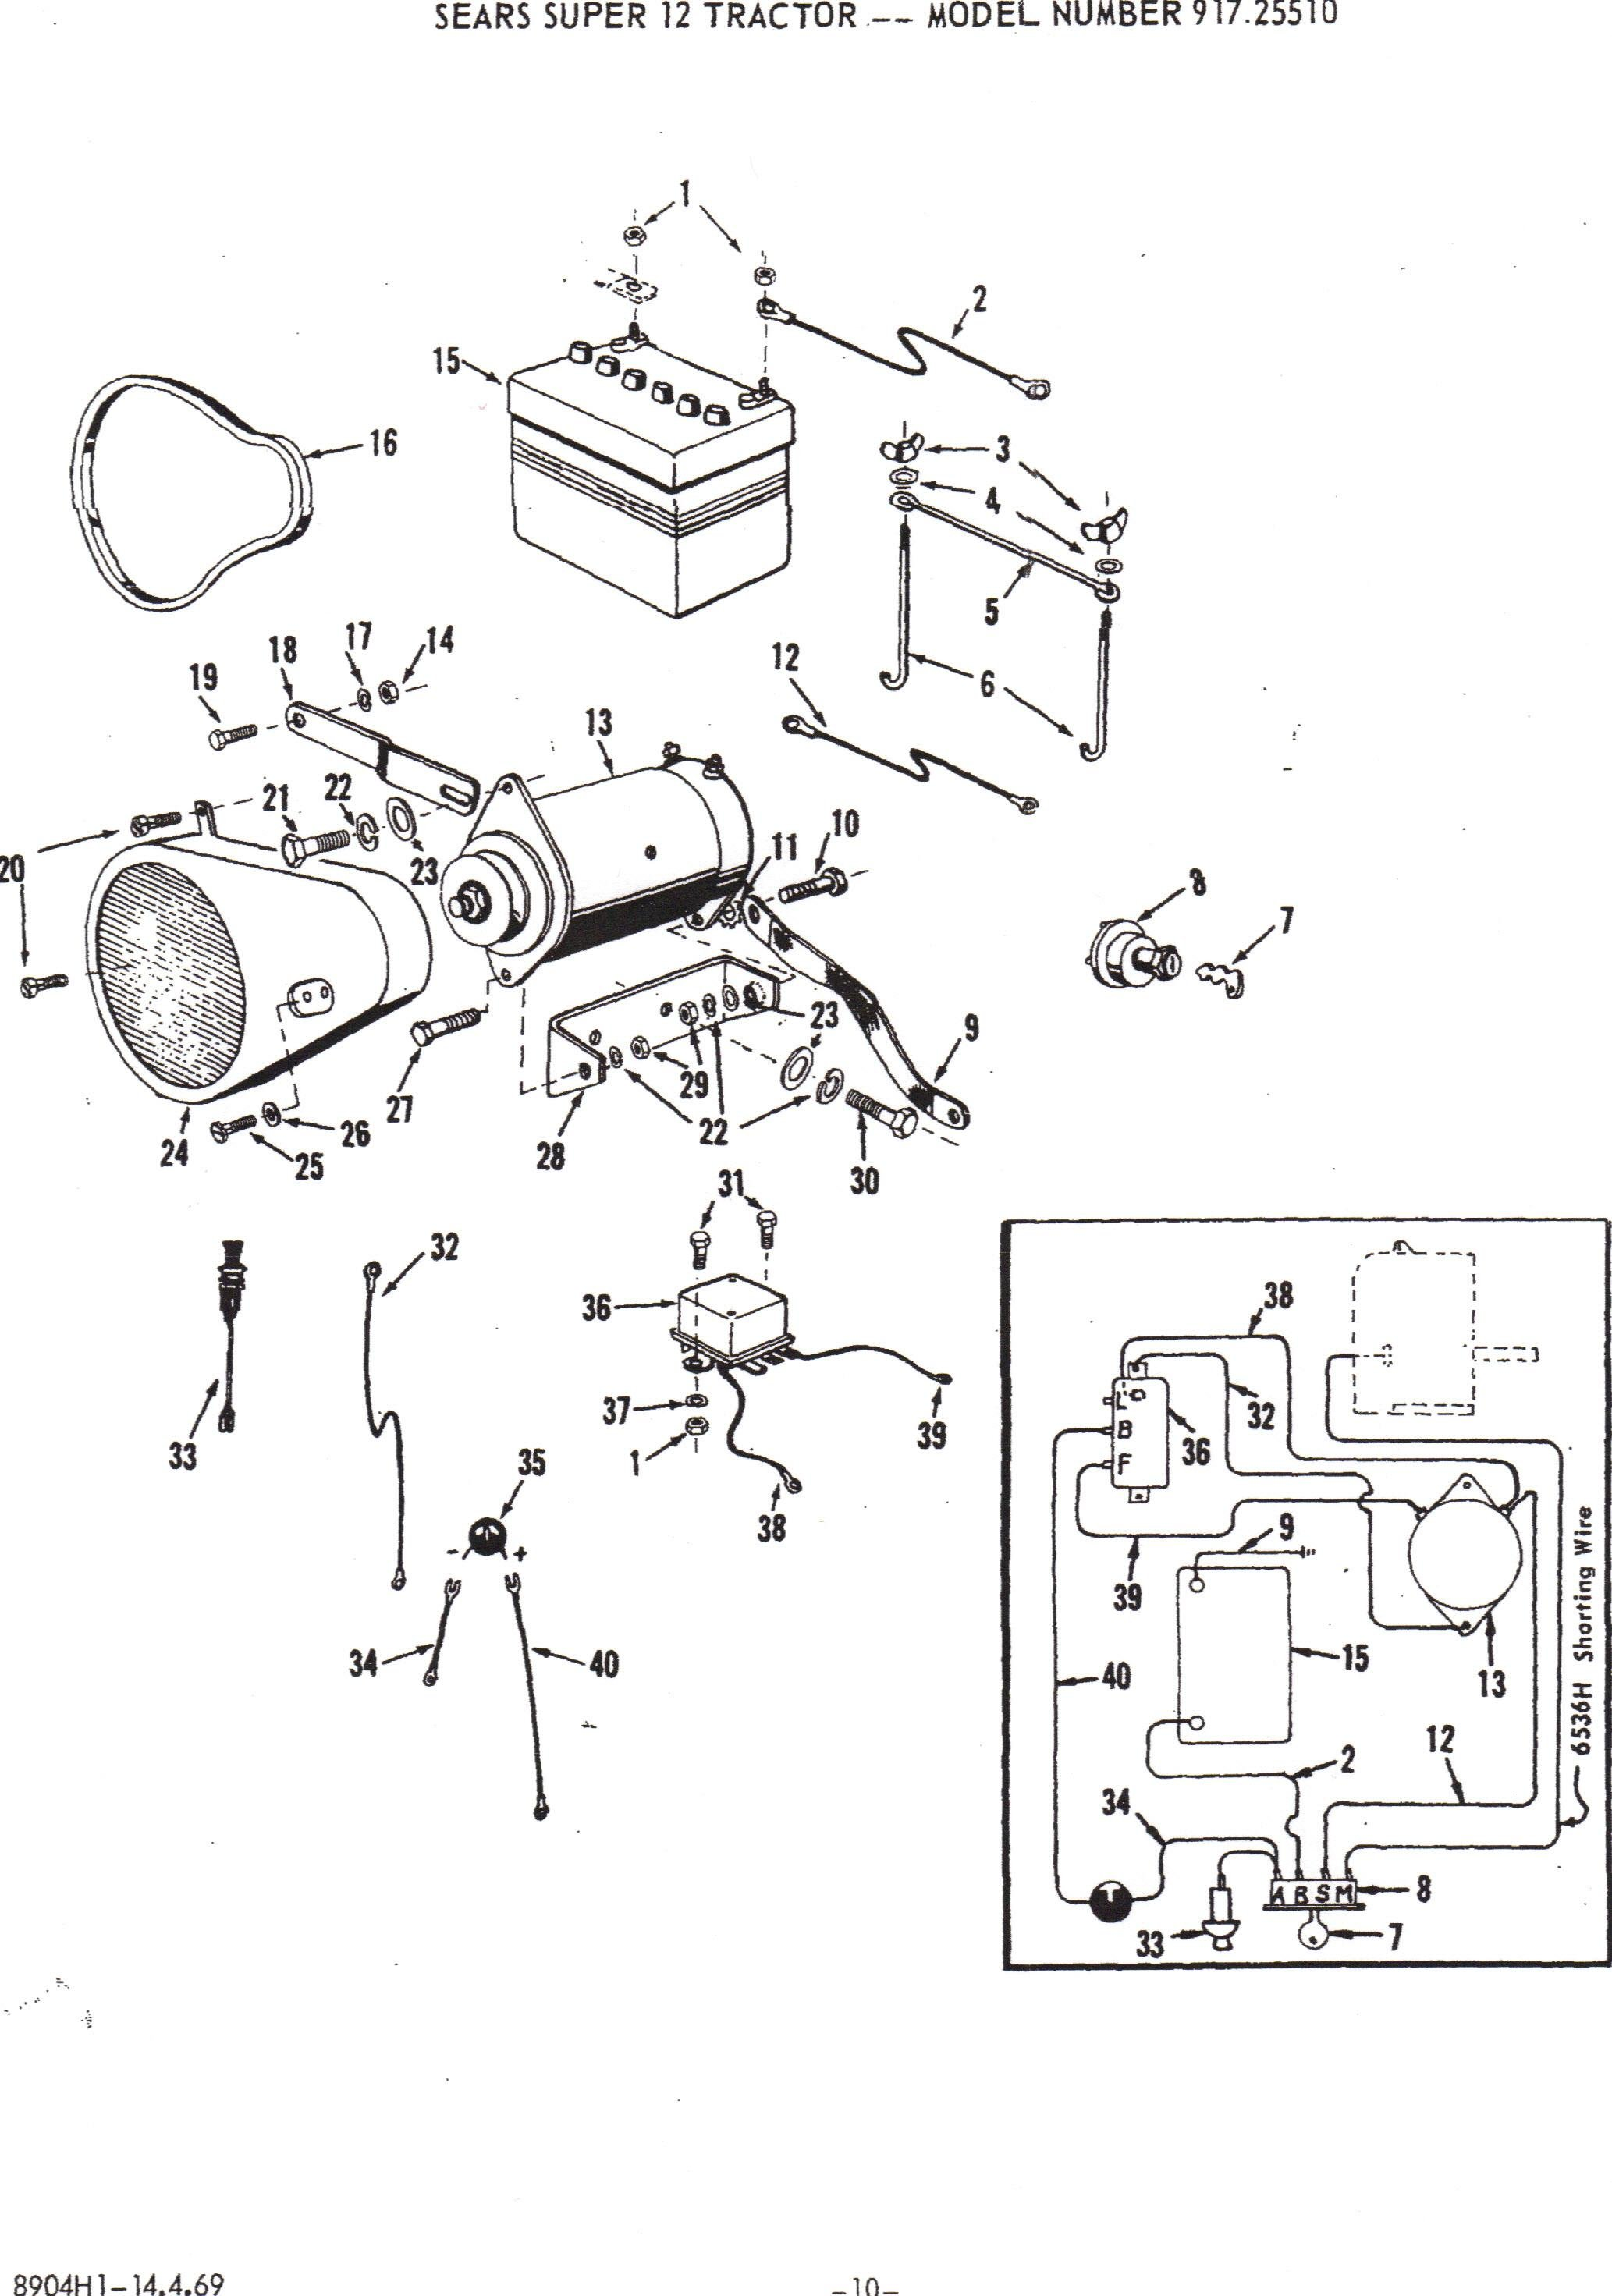 Sears Wiring Diagram Will Be A Thing Lawn Tractor Images Of Ss12 Engine Diagrams Thermostat